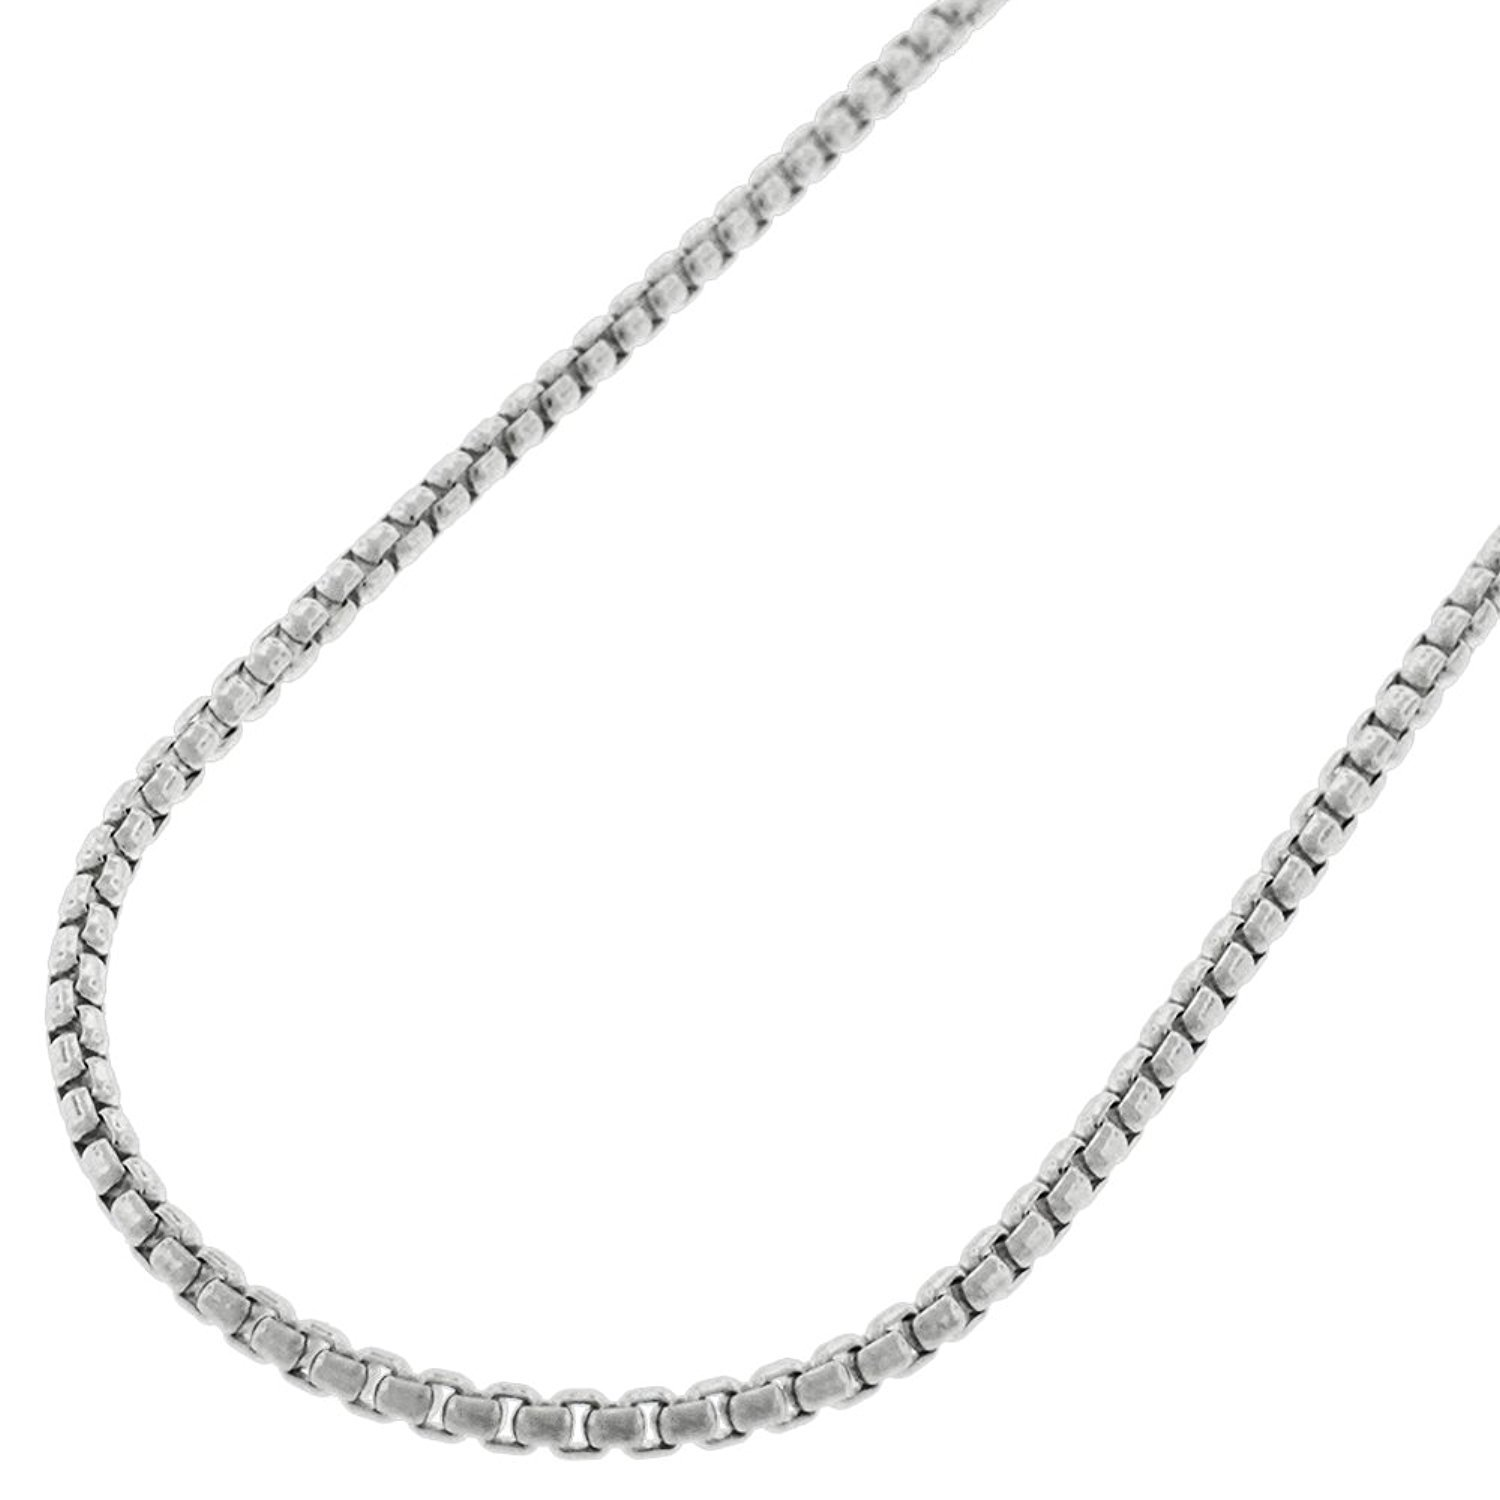 Sterling Silver Italian 2mm Round Box Link Solid 925 Rhodium Necklace Chain 16'' - 24'' (20)